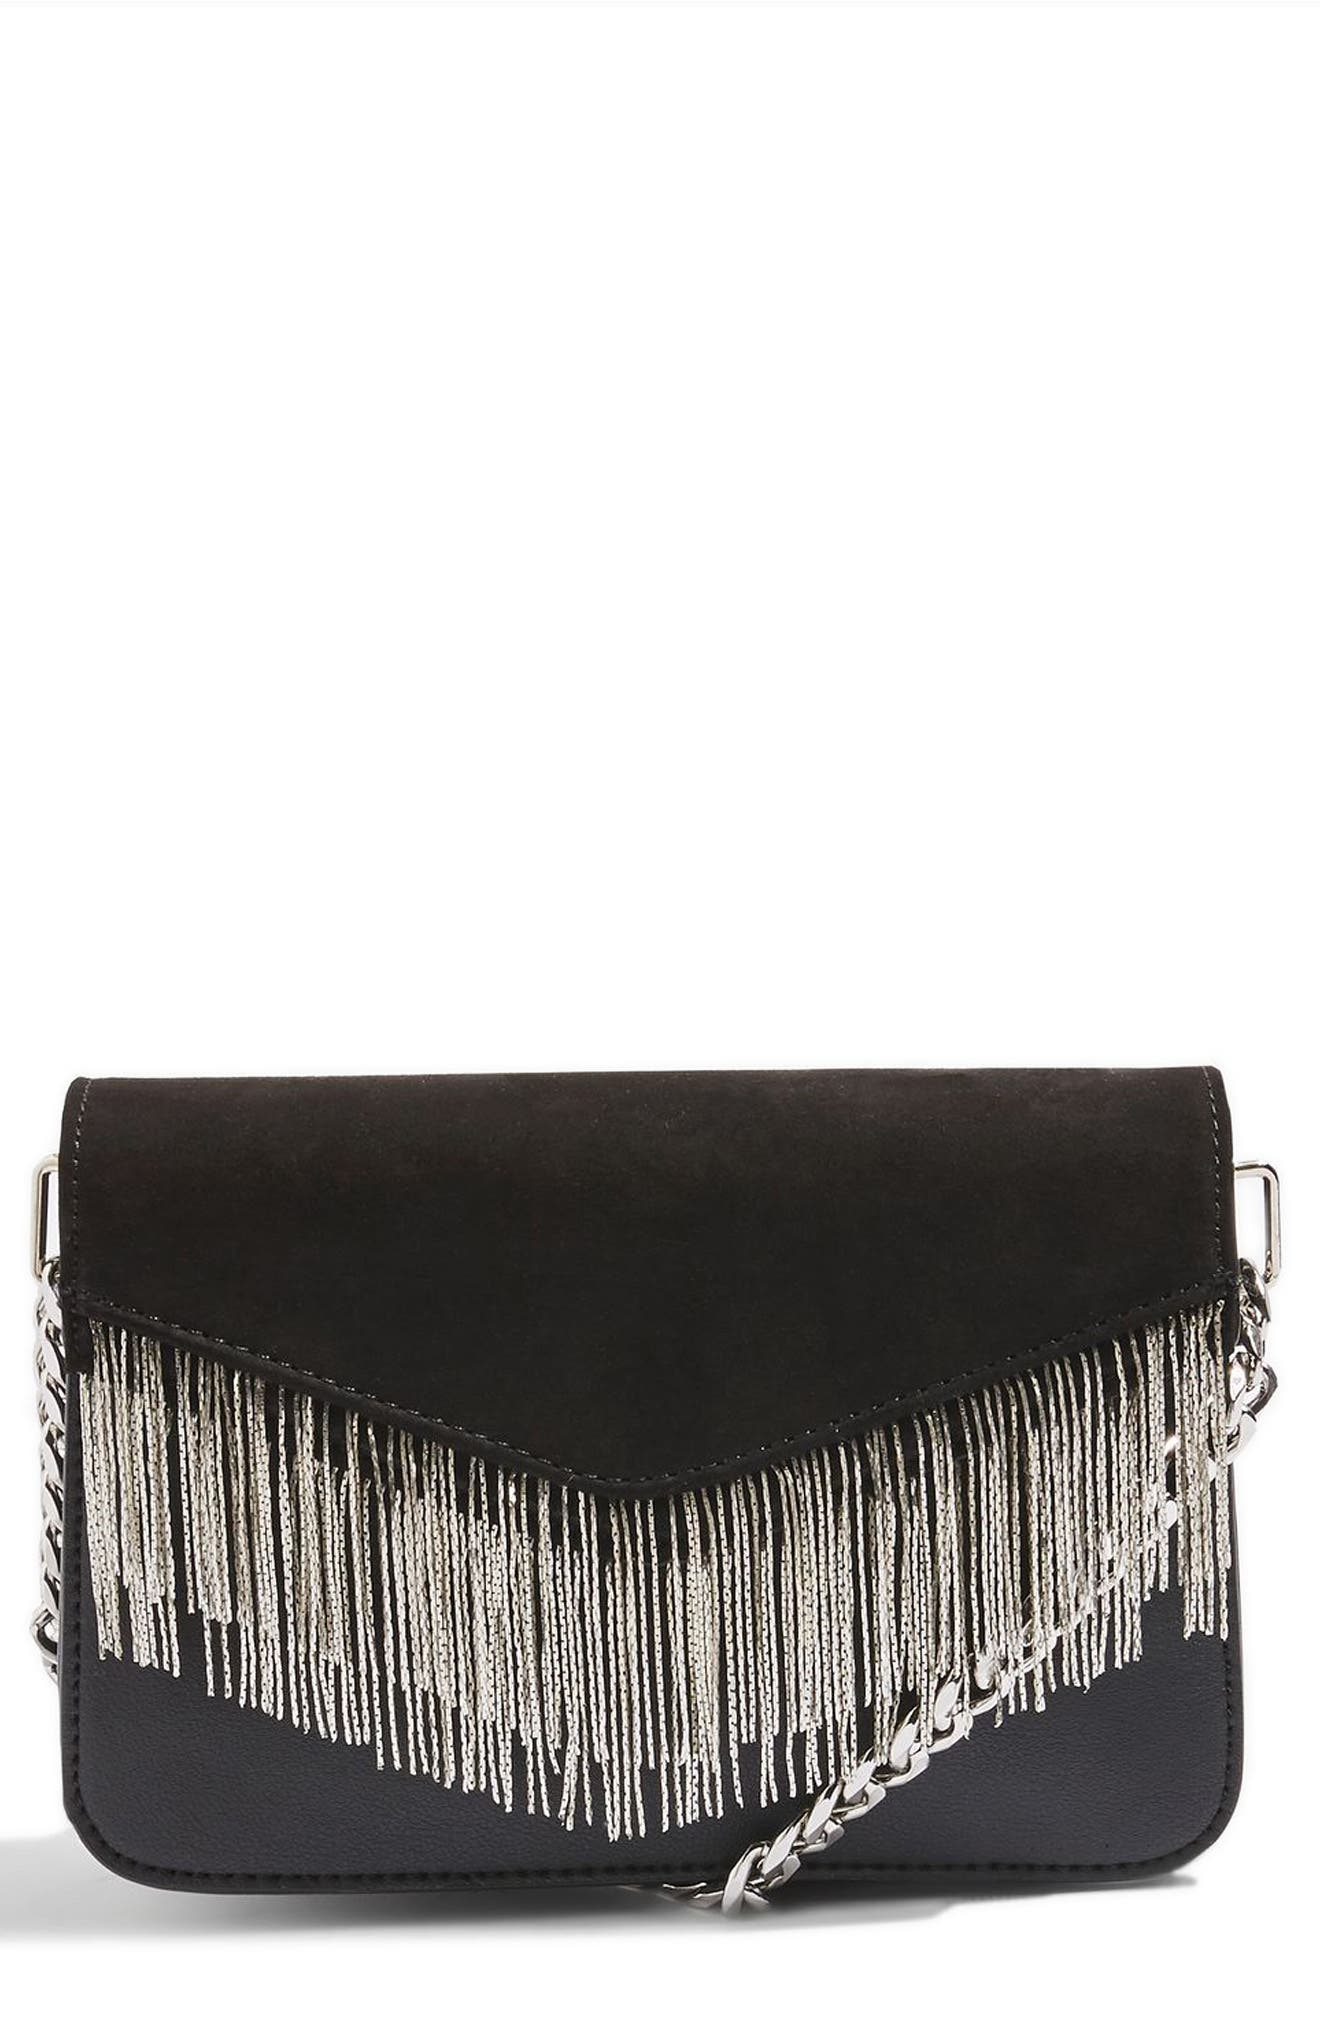 Alternate Image 1 Selected - Topshop Remy Chain Flap Faux Leather Crossbody Bag